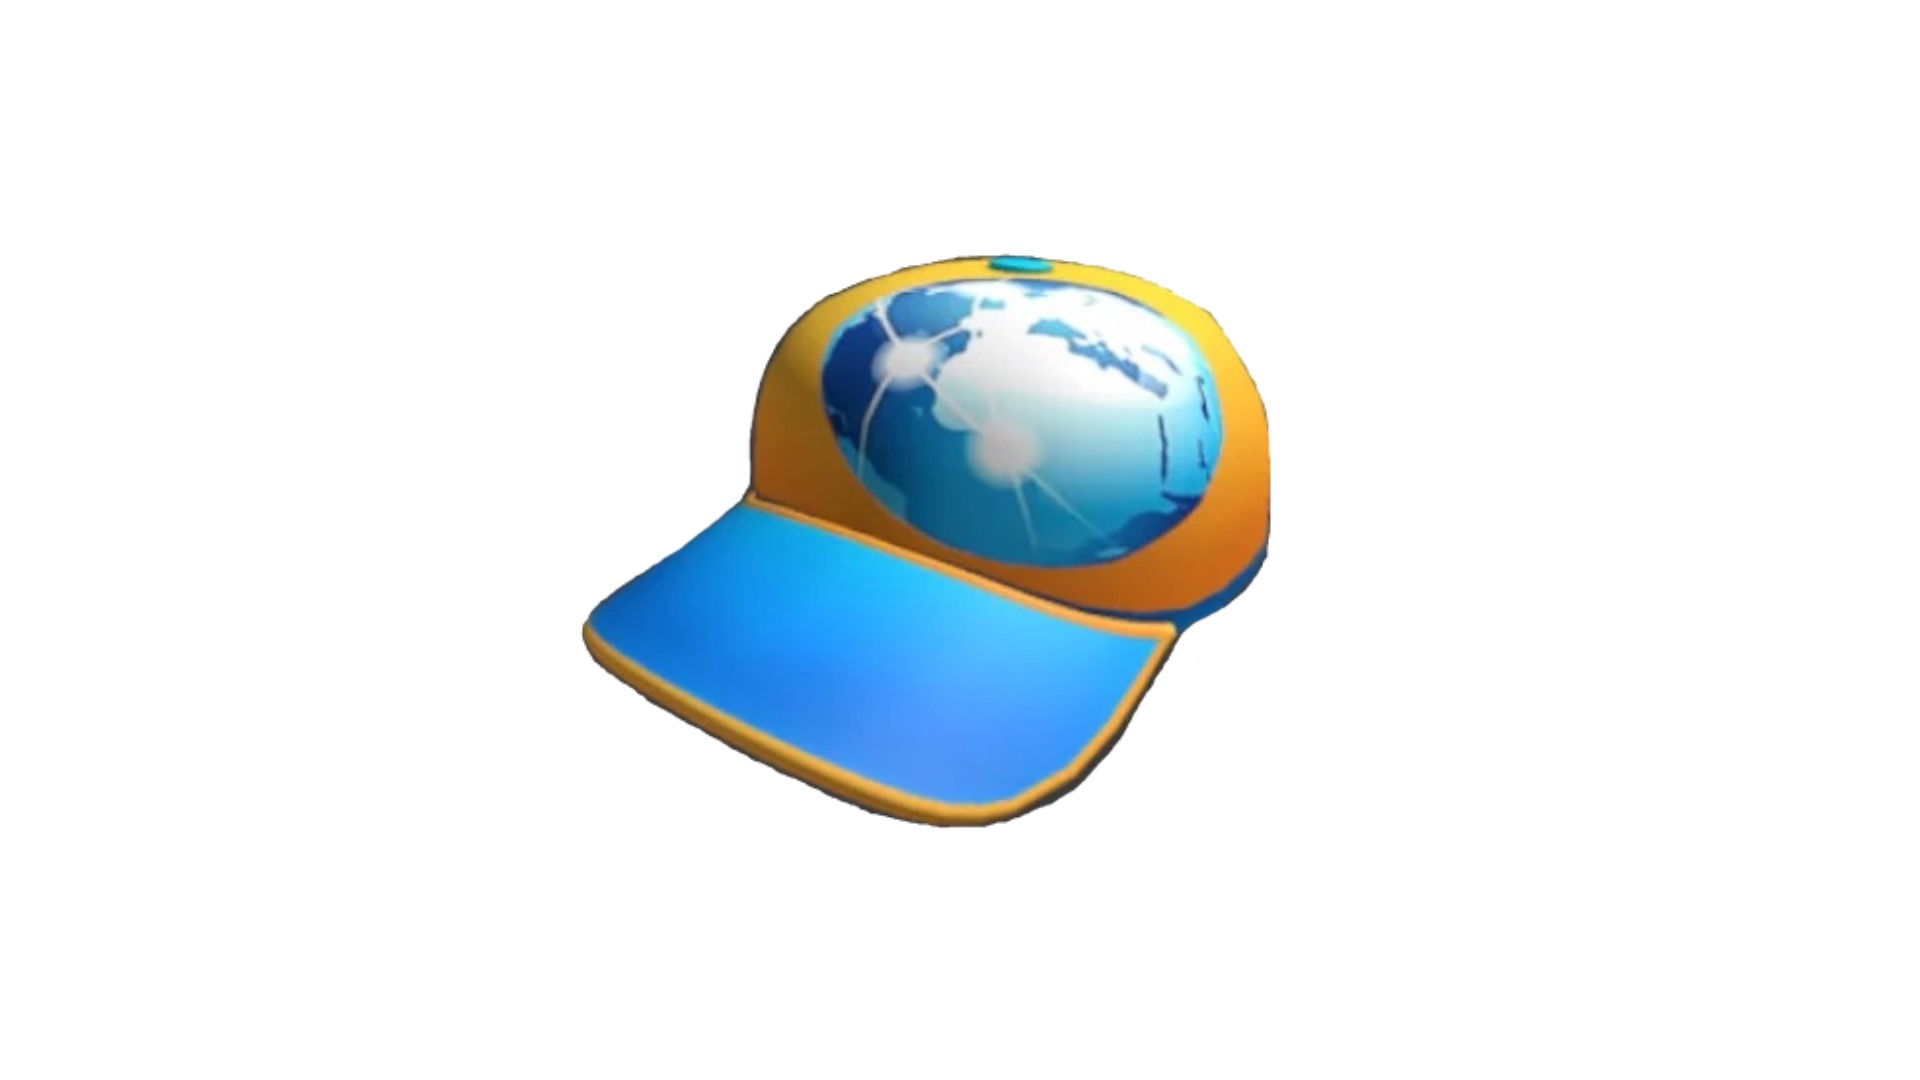 Roblox promo codes free Roblox hats clothes and accessories